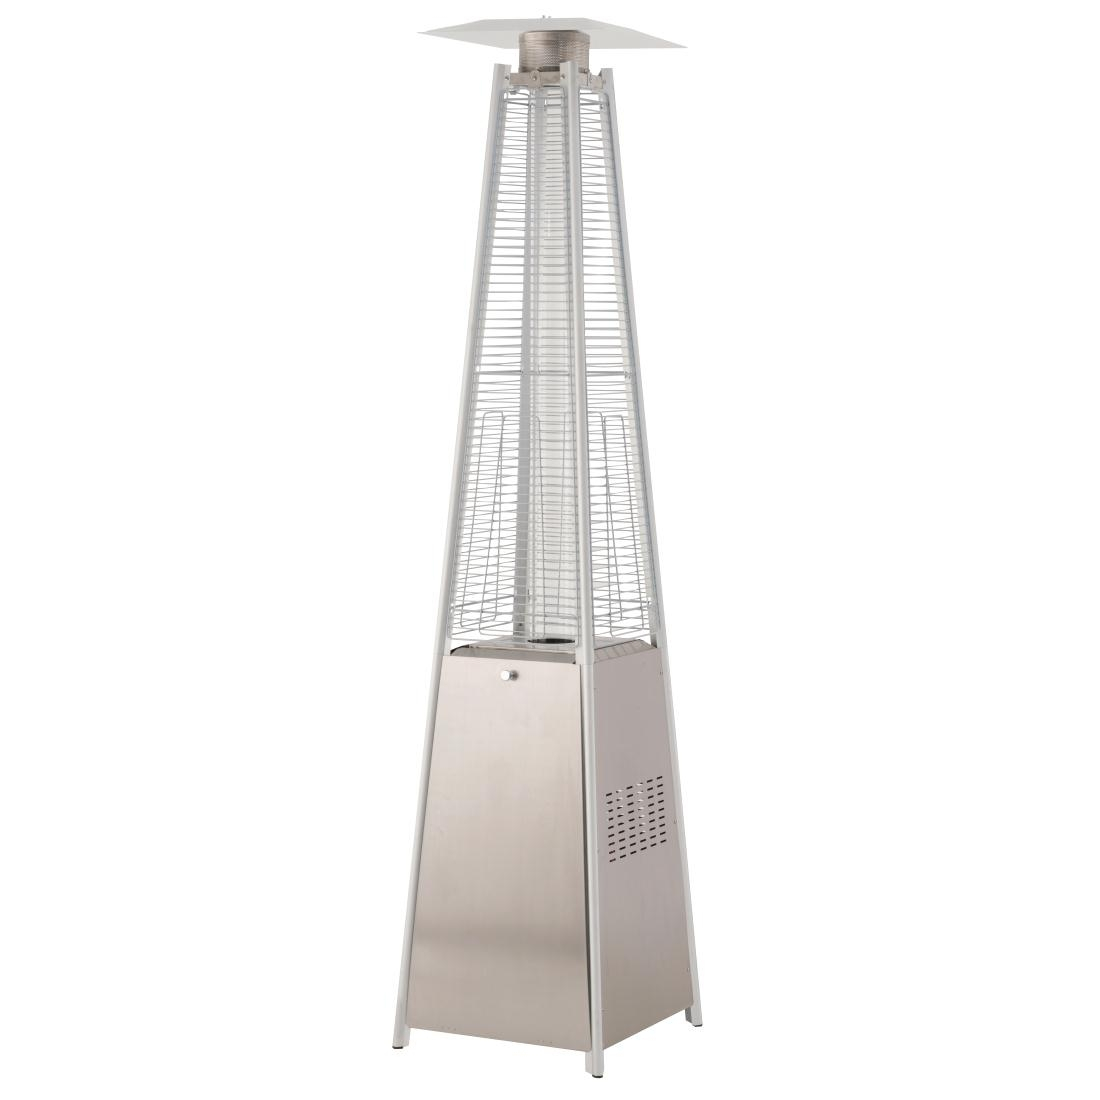 Lifestyle Tahiti Flame Stainless Steel Patio Heater 13kW